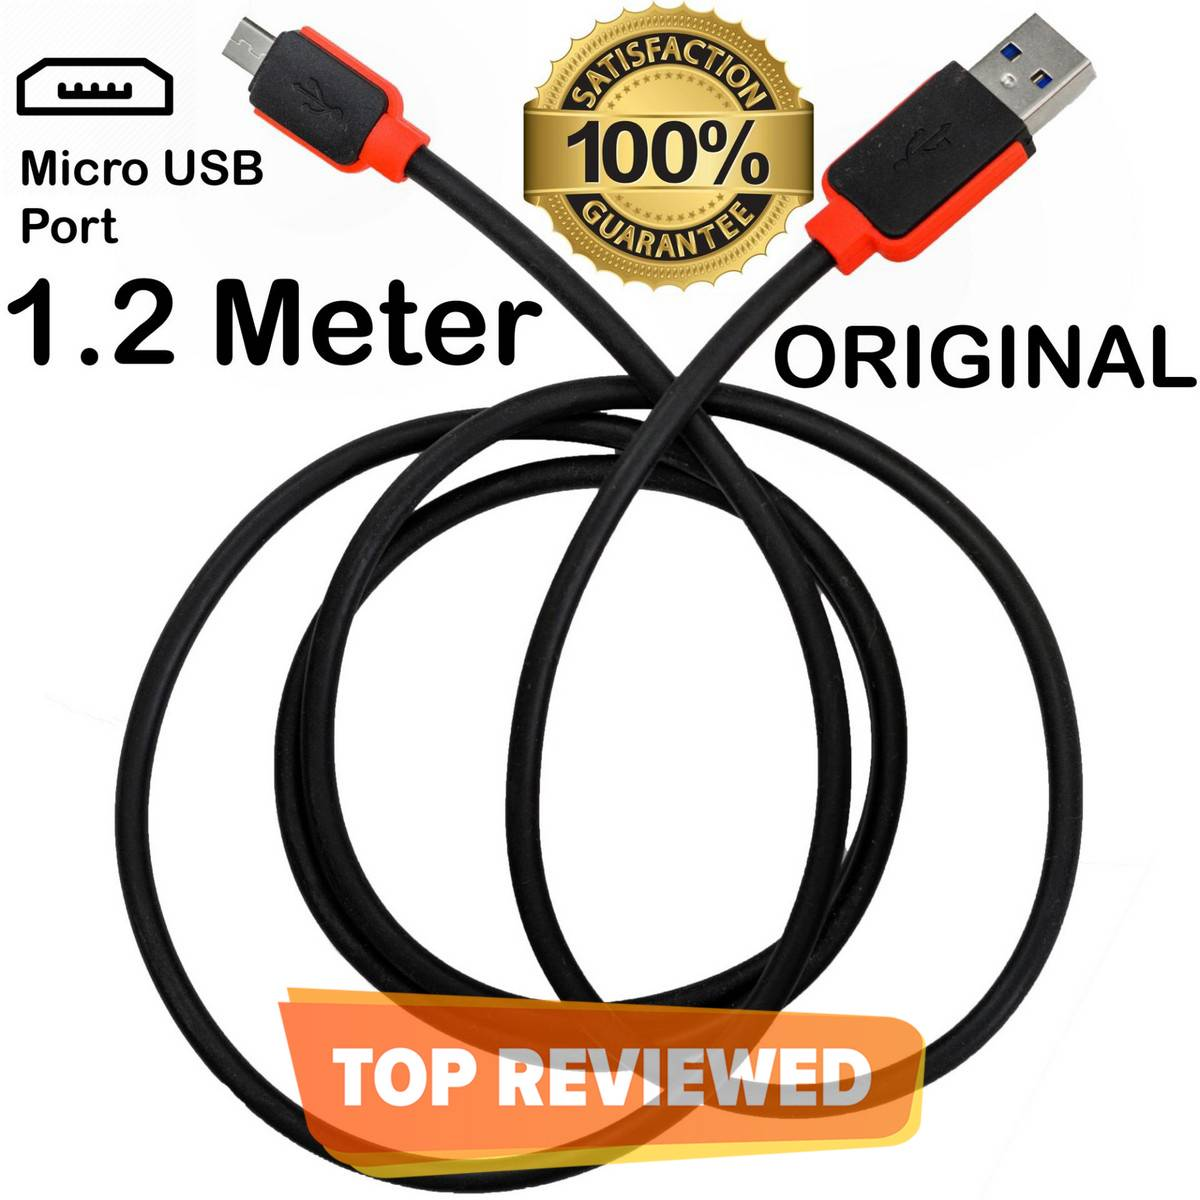 ORIGINAL Warner 1.2 Meter Micro USB 3.0 Fast Charging + Data Cable For Samsung / HTC / Infinix / Xiaomi / Oppo / Huawei / Nokia / Lenovo / Android Phones - Black & Red